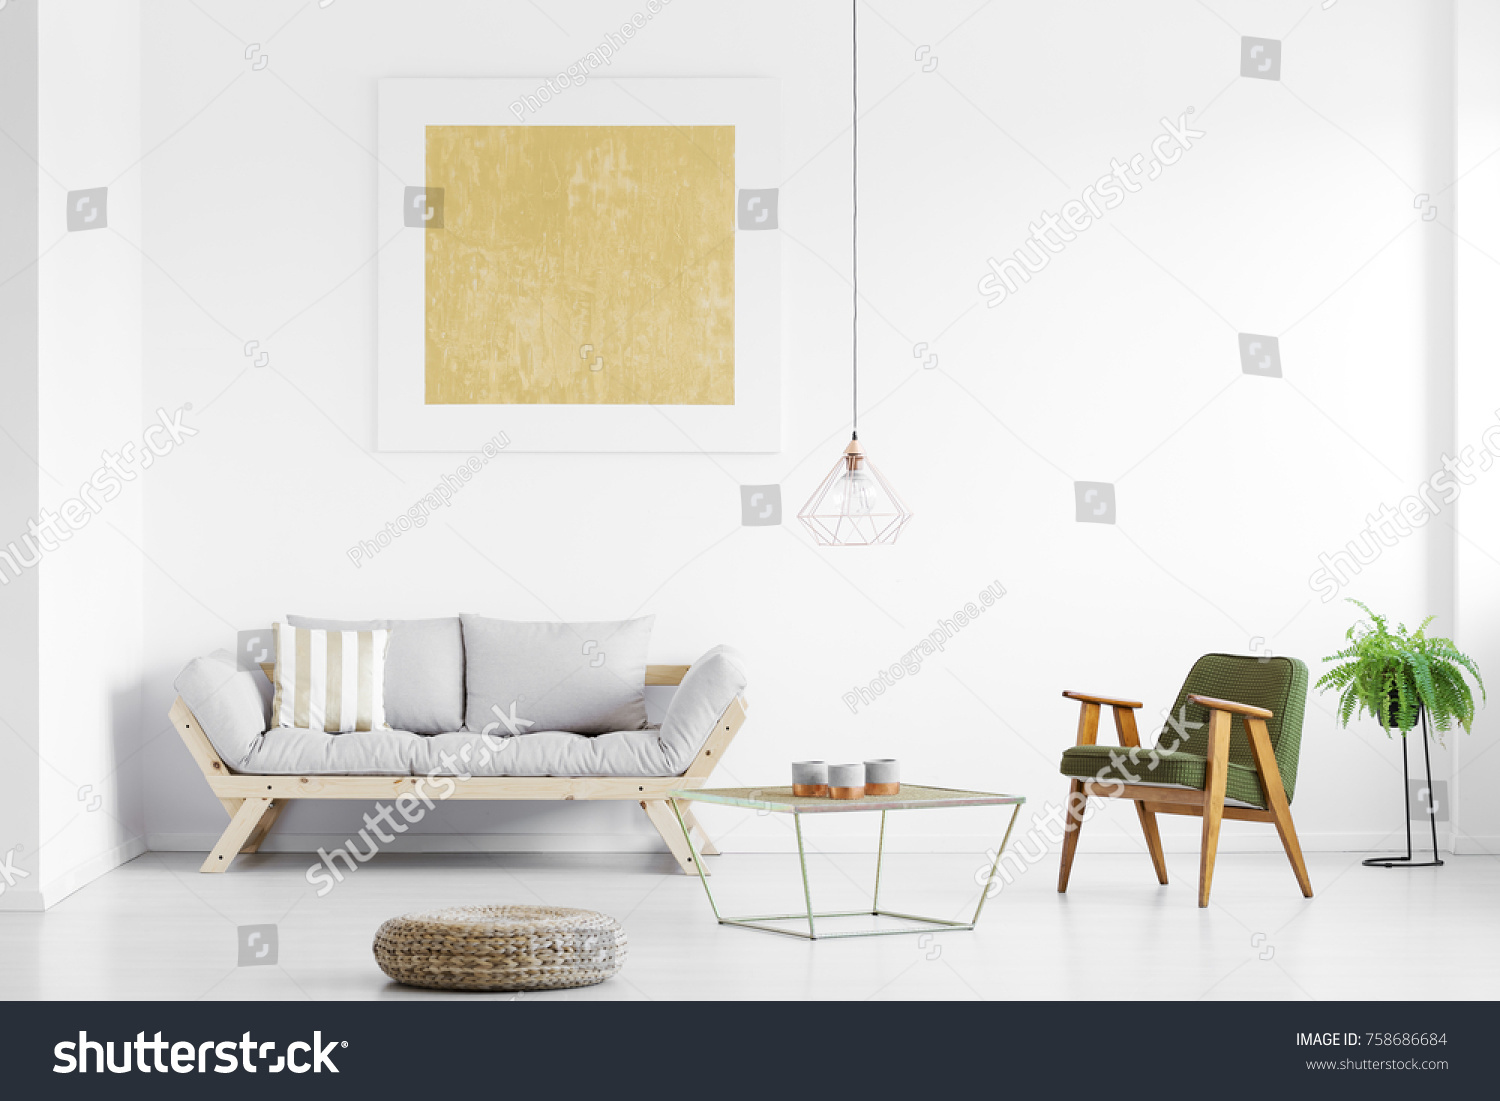 Gold Painting Above Grey Sofa In Bright Living Room With Armchair At Table,  Pouf And